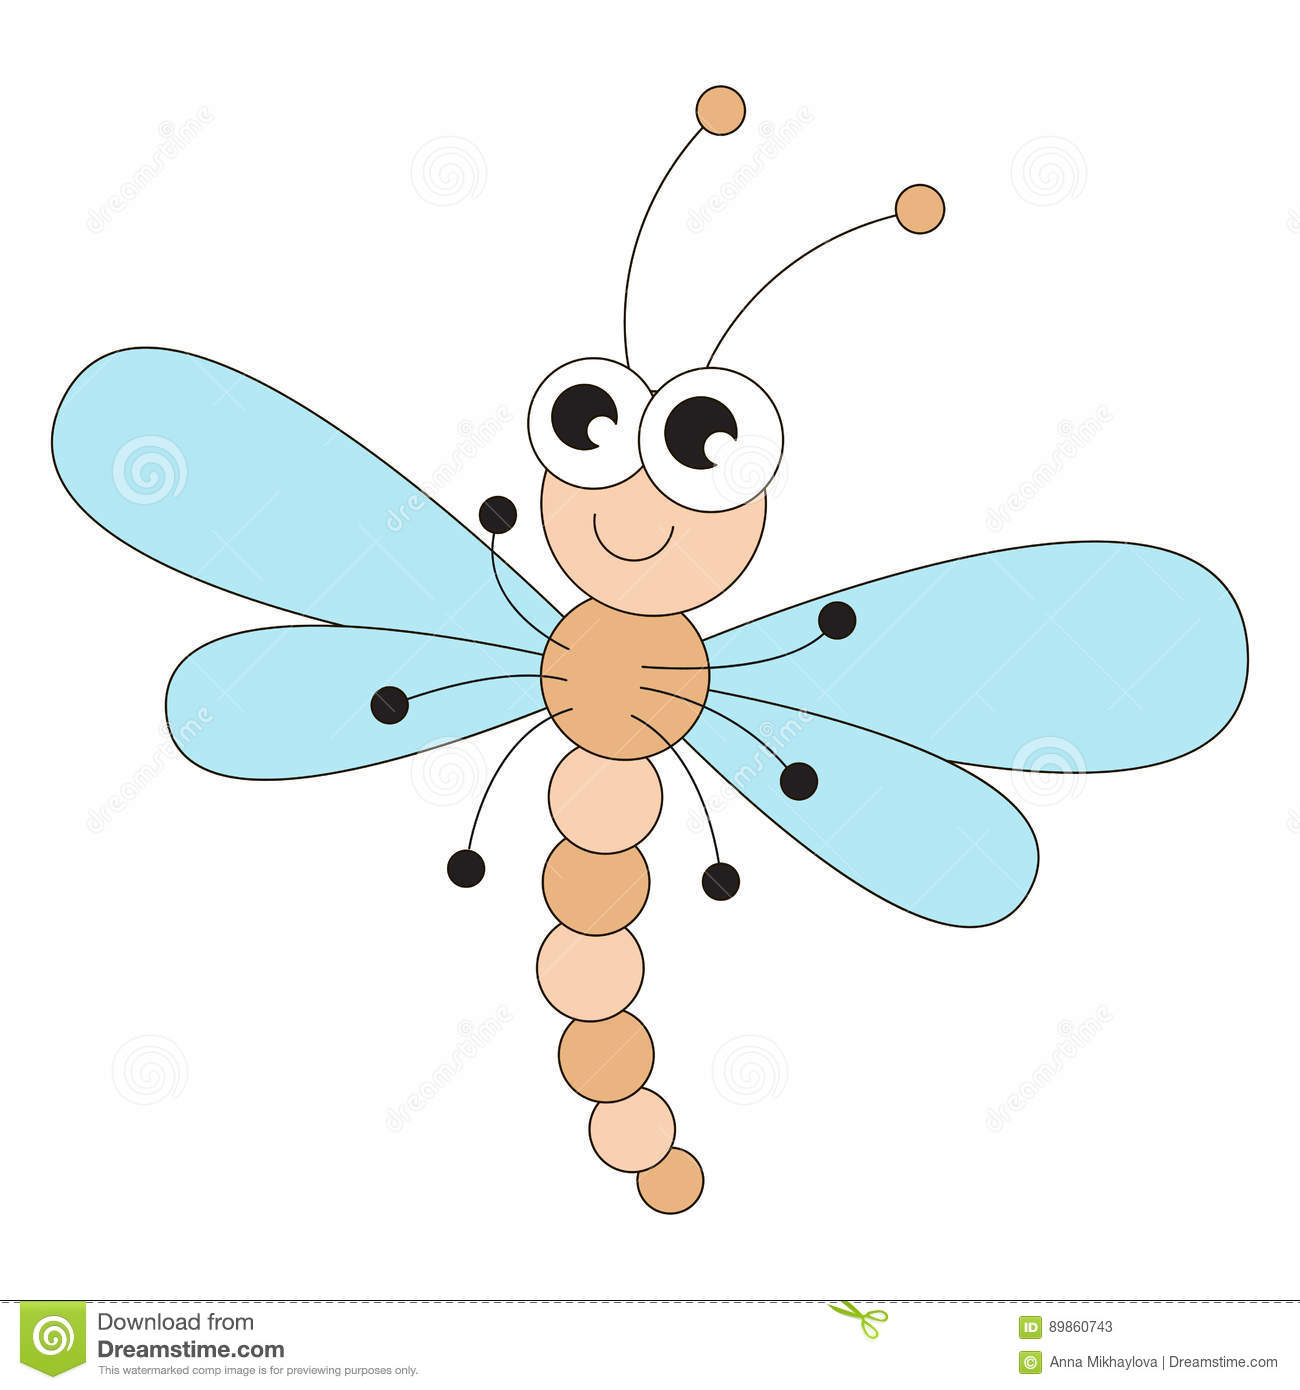 Funny Dragonfly Cartoon Stock Vector Illustration Of Comic 89860743